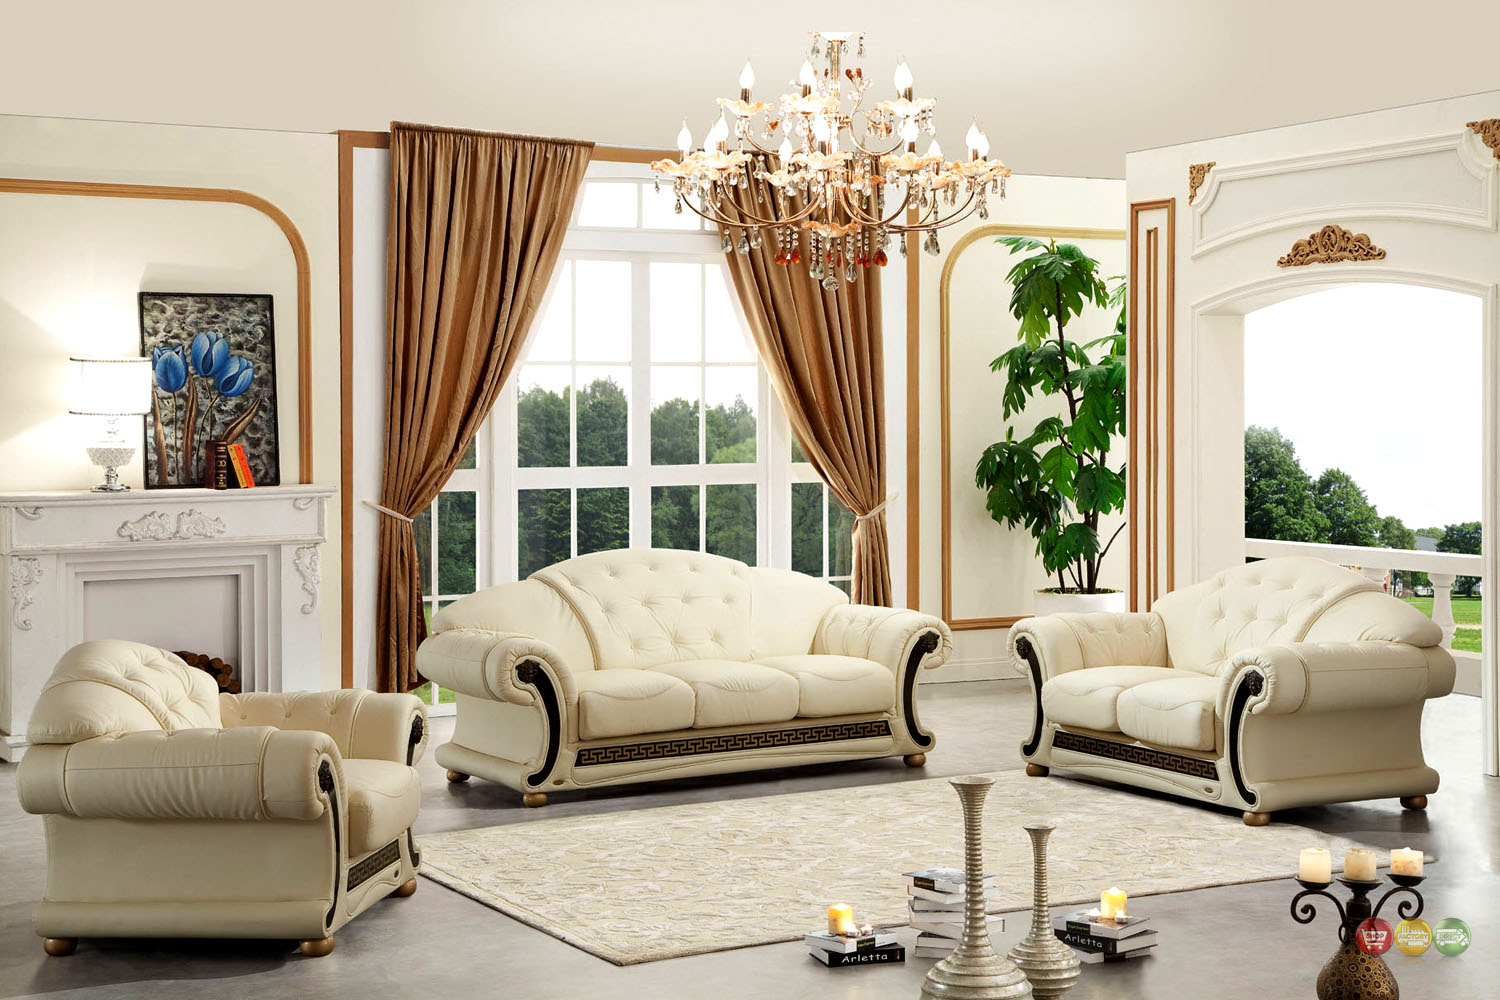 Versace Cleopatra Cream Italian Top Grain Leather Beige  : divani casa cleopatra traditional leather sofa set 27 from www.ebay.com size 1500 x 1000 jpeg 316kB